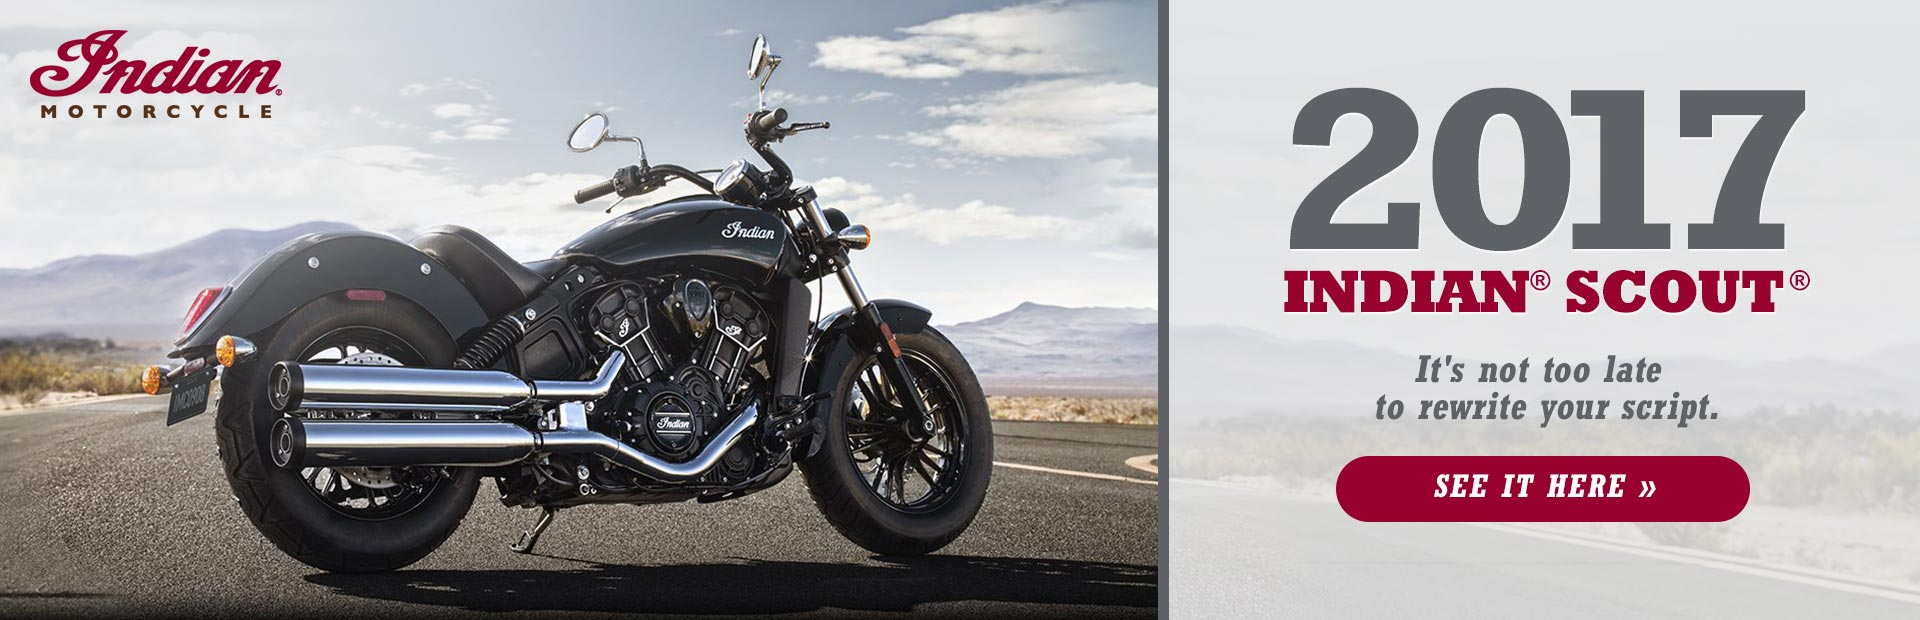 2017 Indian® Scout®: Click here to view the model.